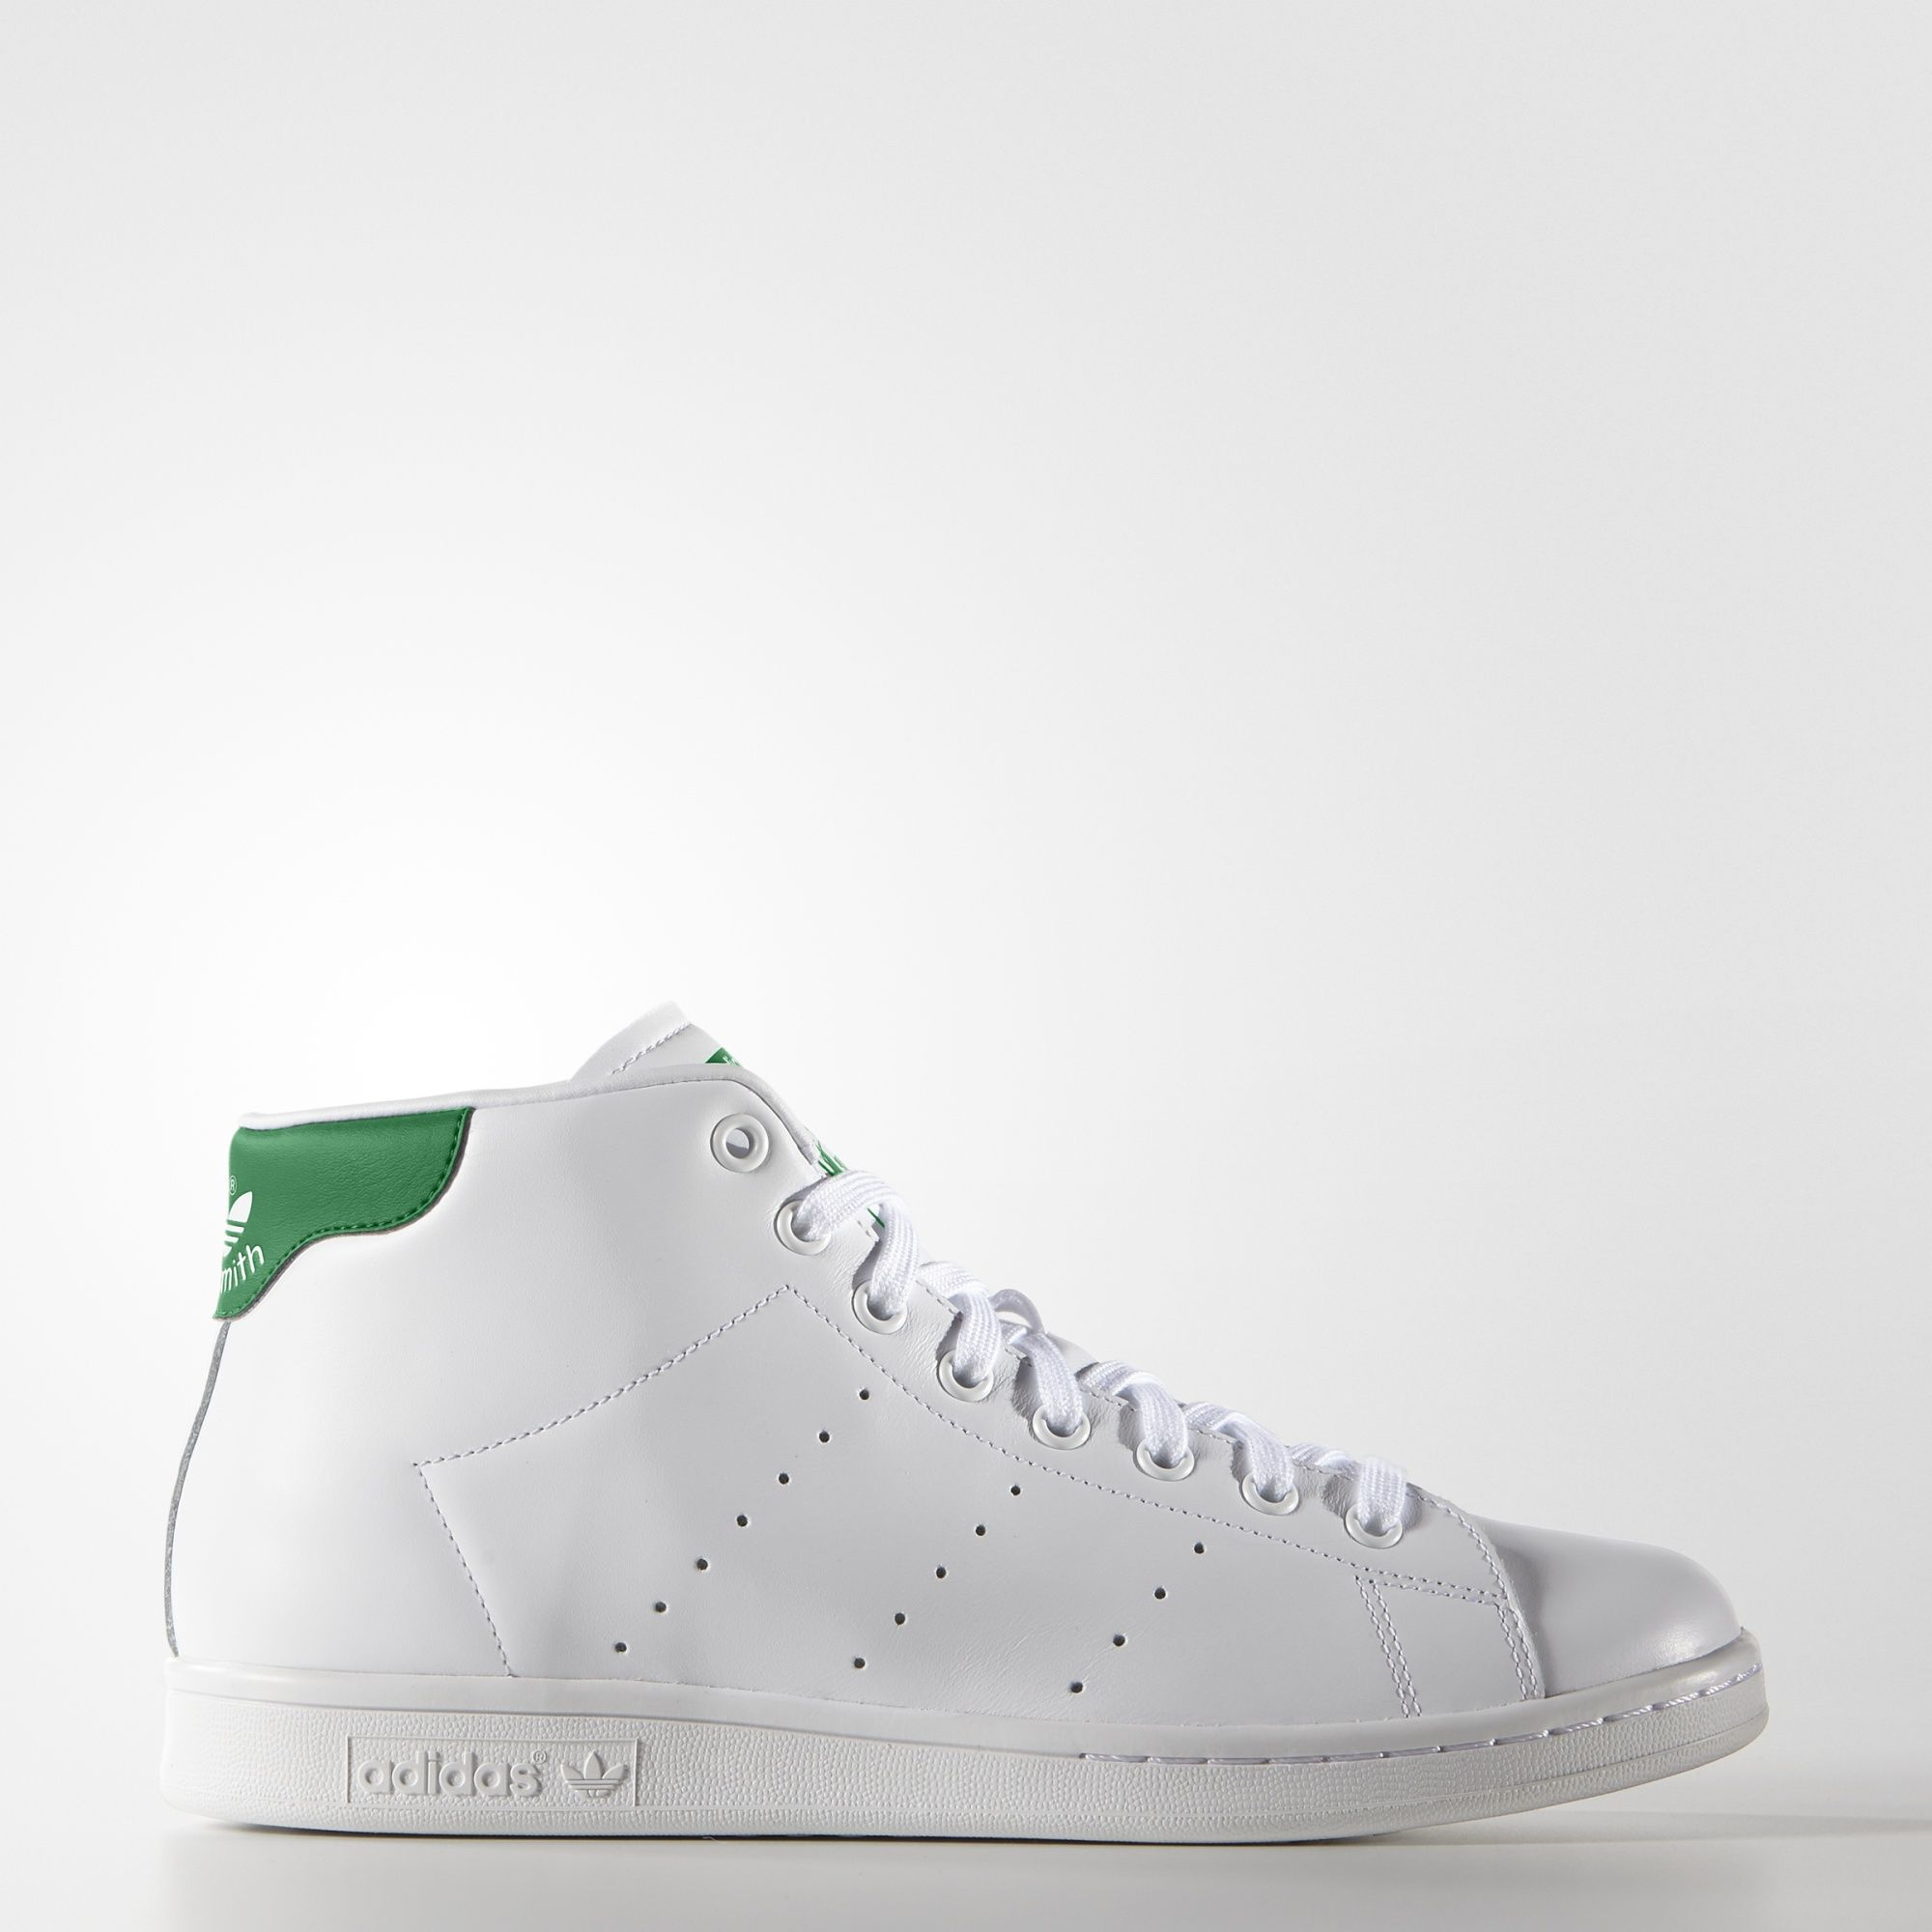 Adidas Originals Men's Stan Smith Mid Shoes Size 7 to 12 us